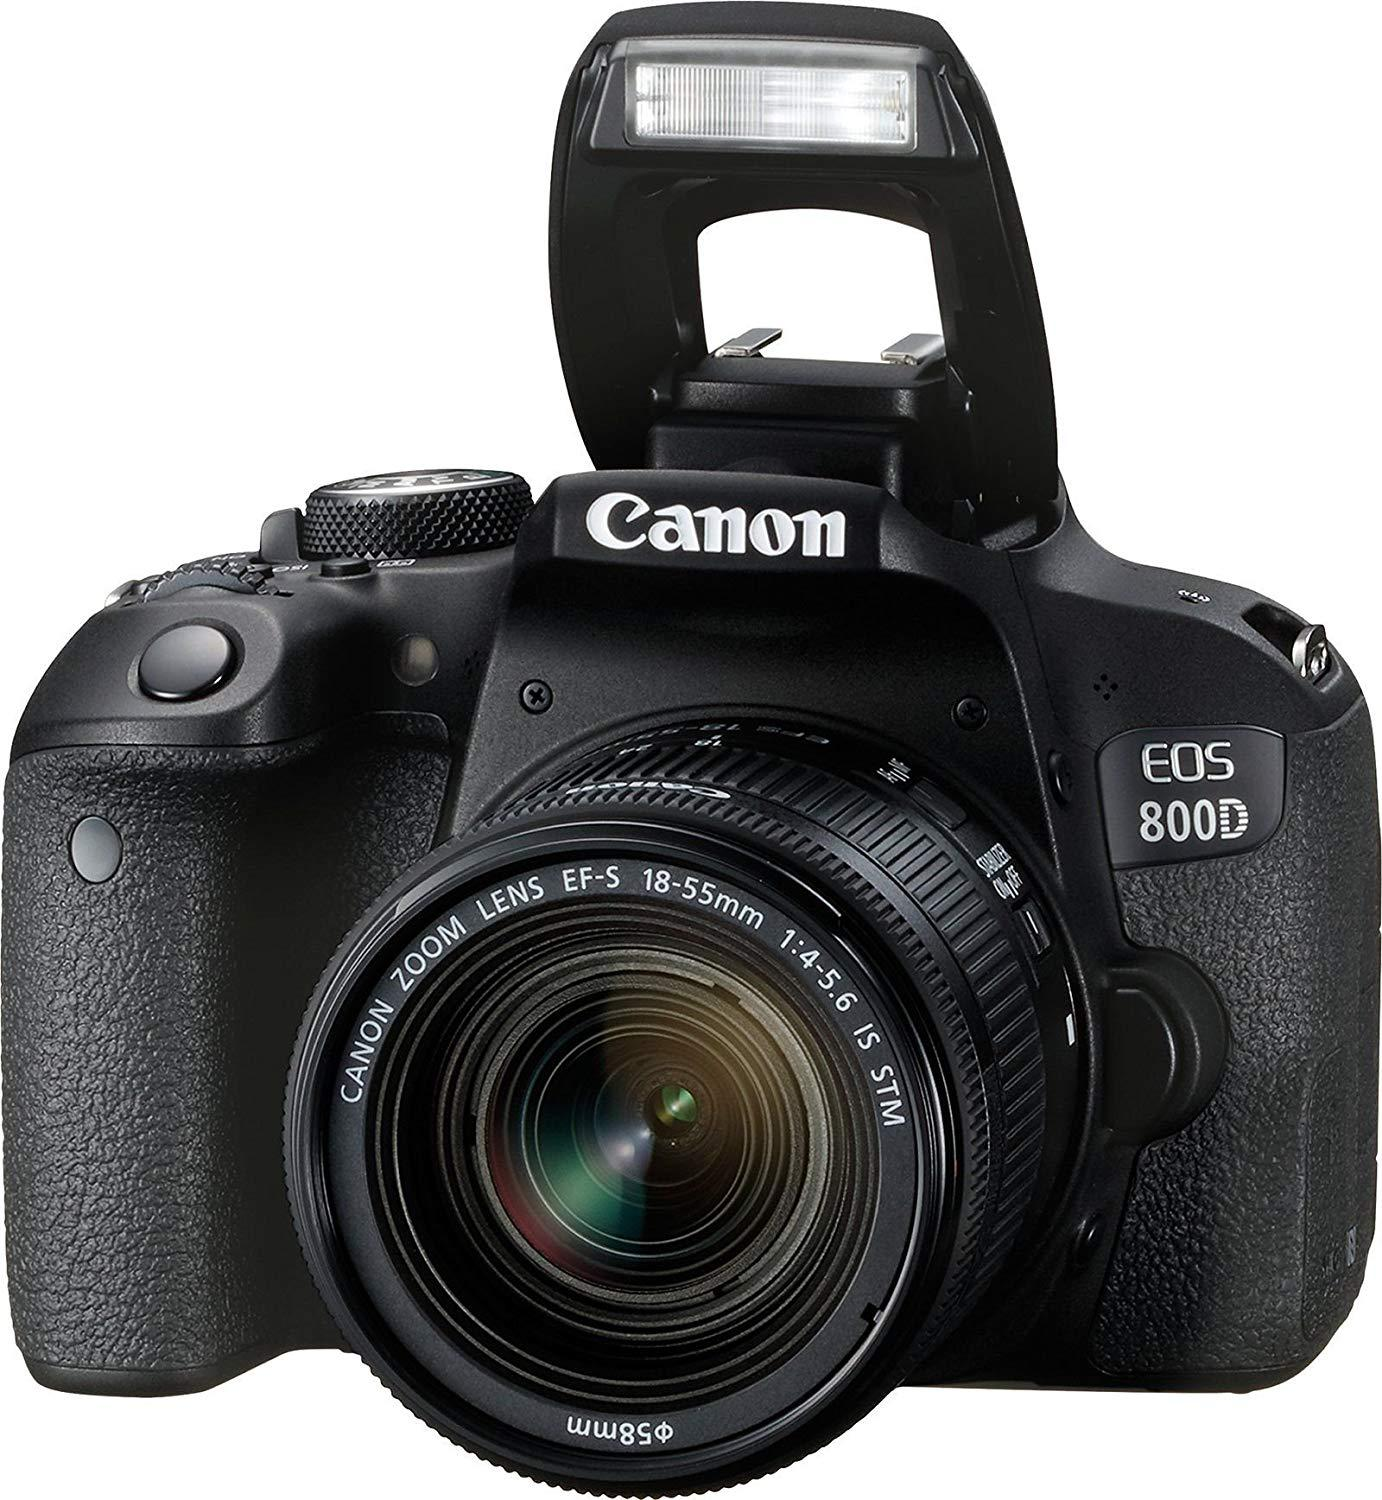 Canon Philippines Dslr Cameras For Sale Prices Reviews Eos 70d Body 800d Camera With 18 55mm Is Stm Lens